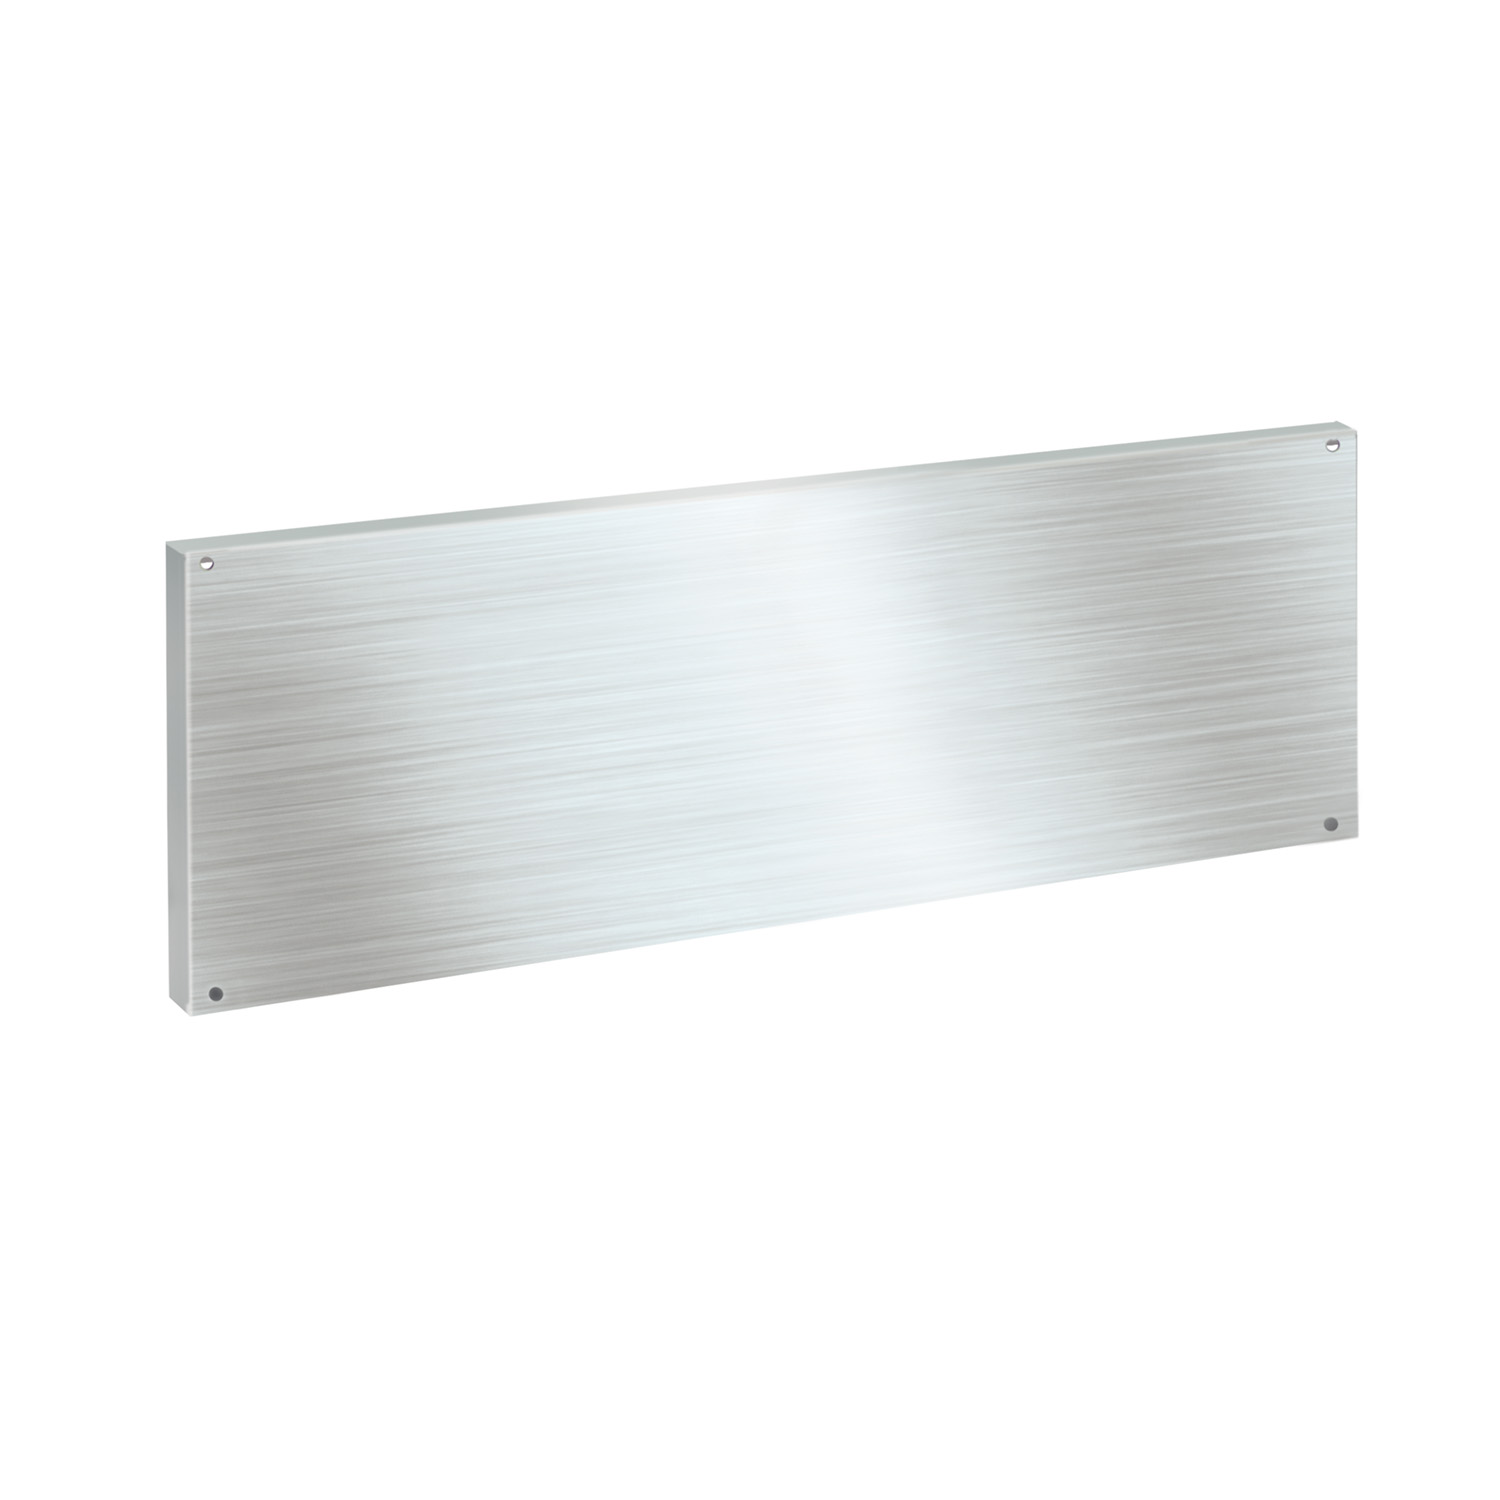 Stainless steel back panel (300 x 900mm)